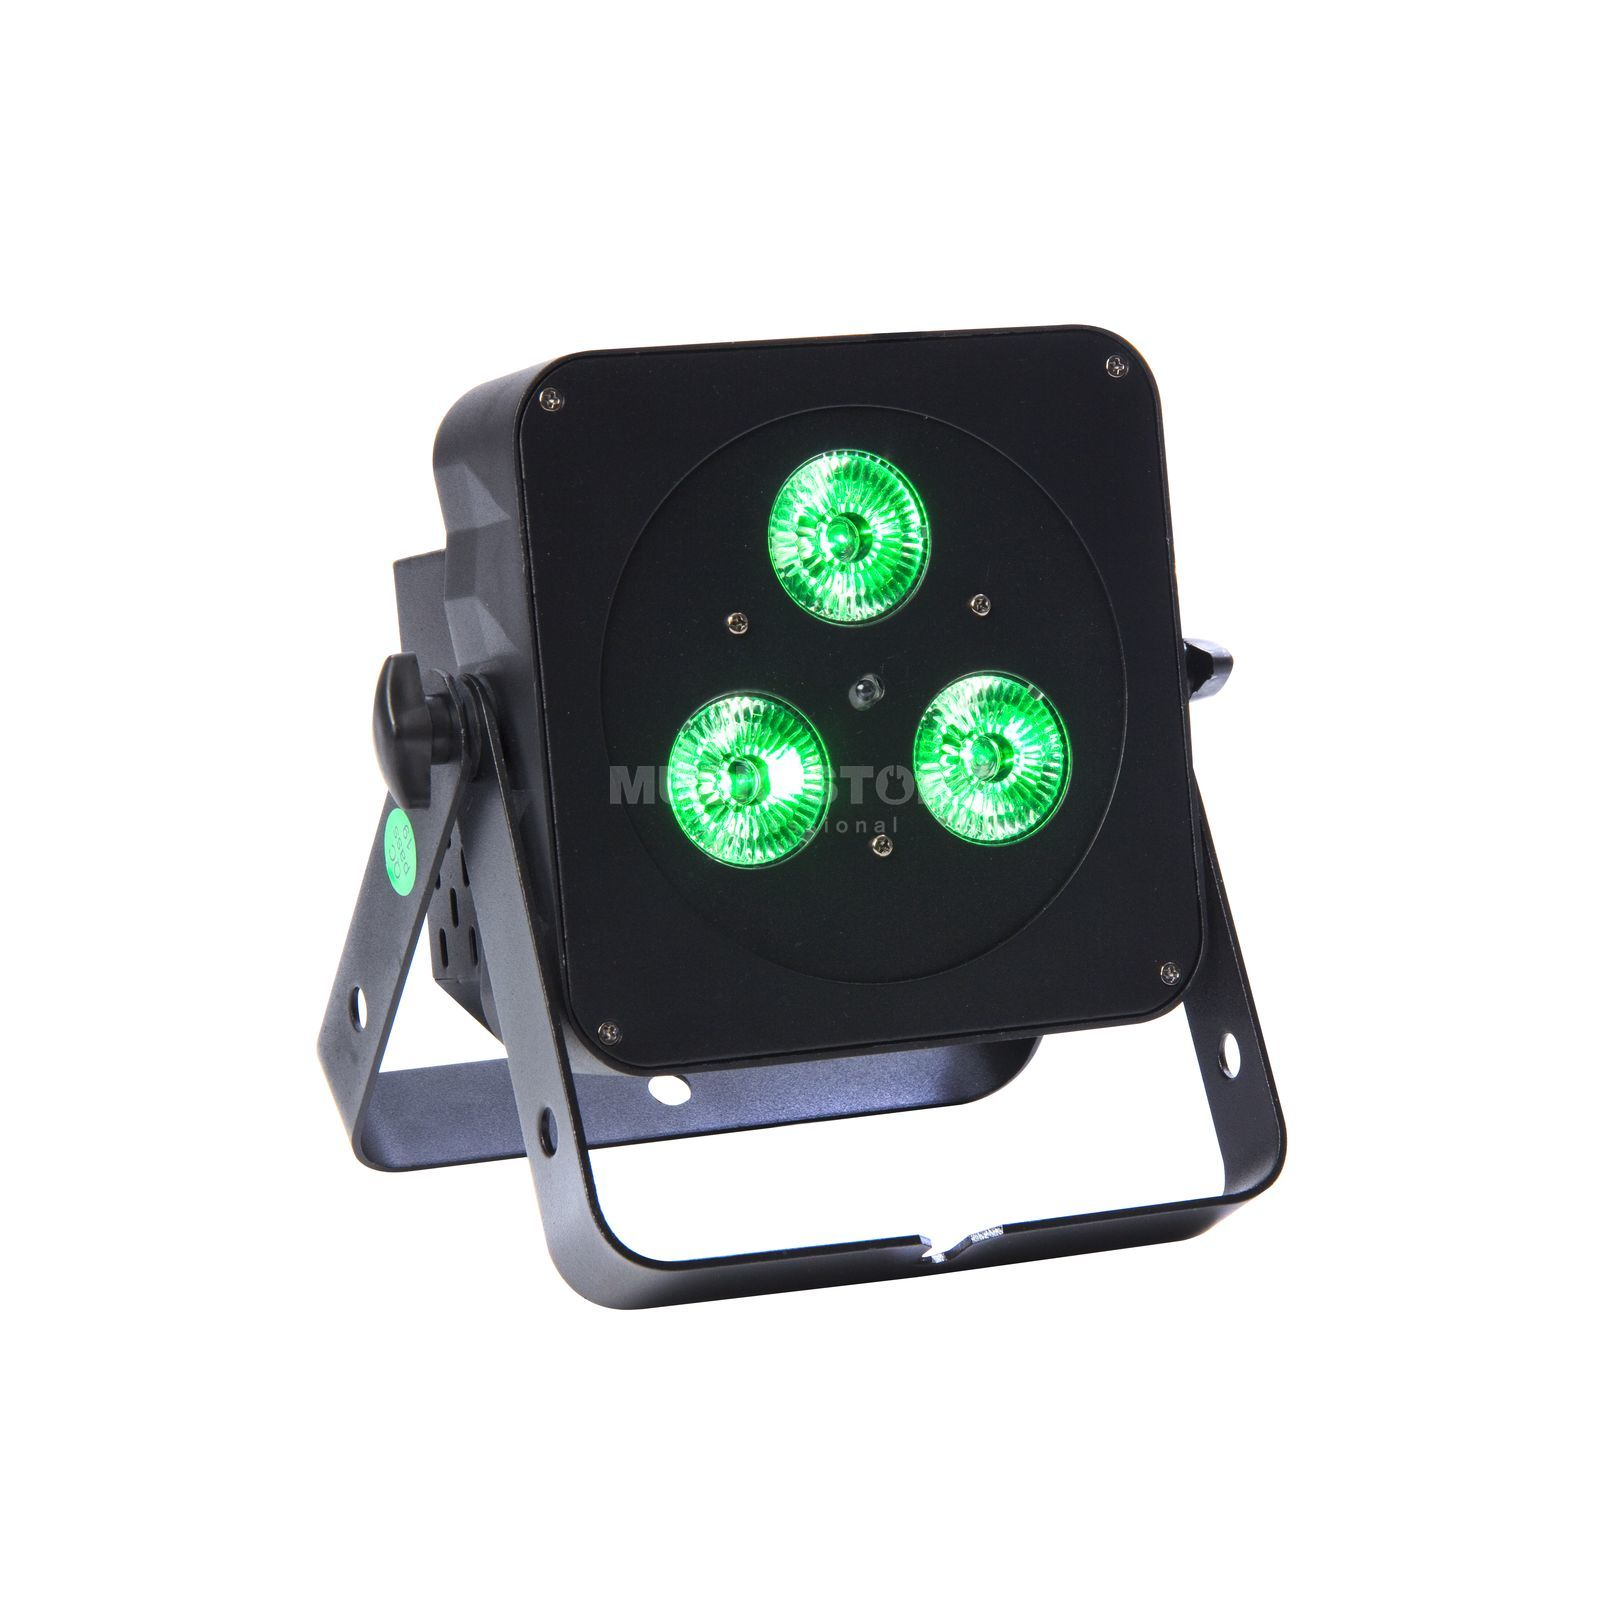 lightmaXX FLAT PAR MINI QUAD 3x5W RGBW, black, IR Remote Produktbild